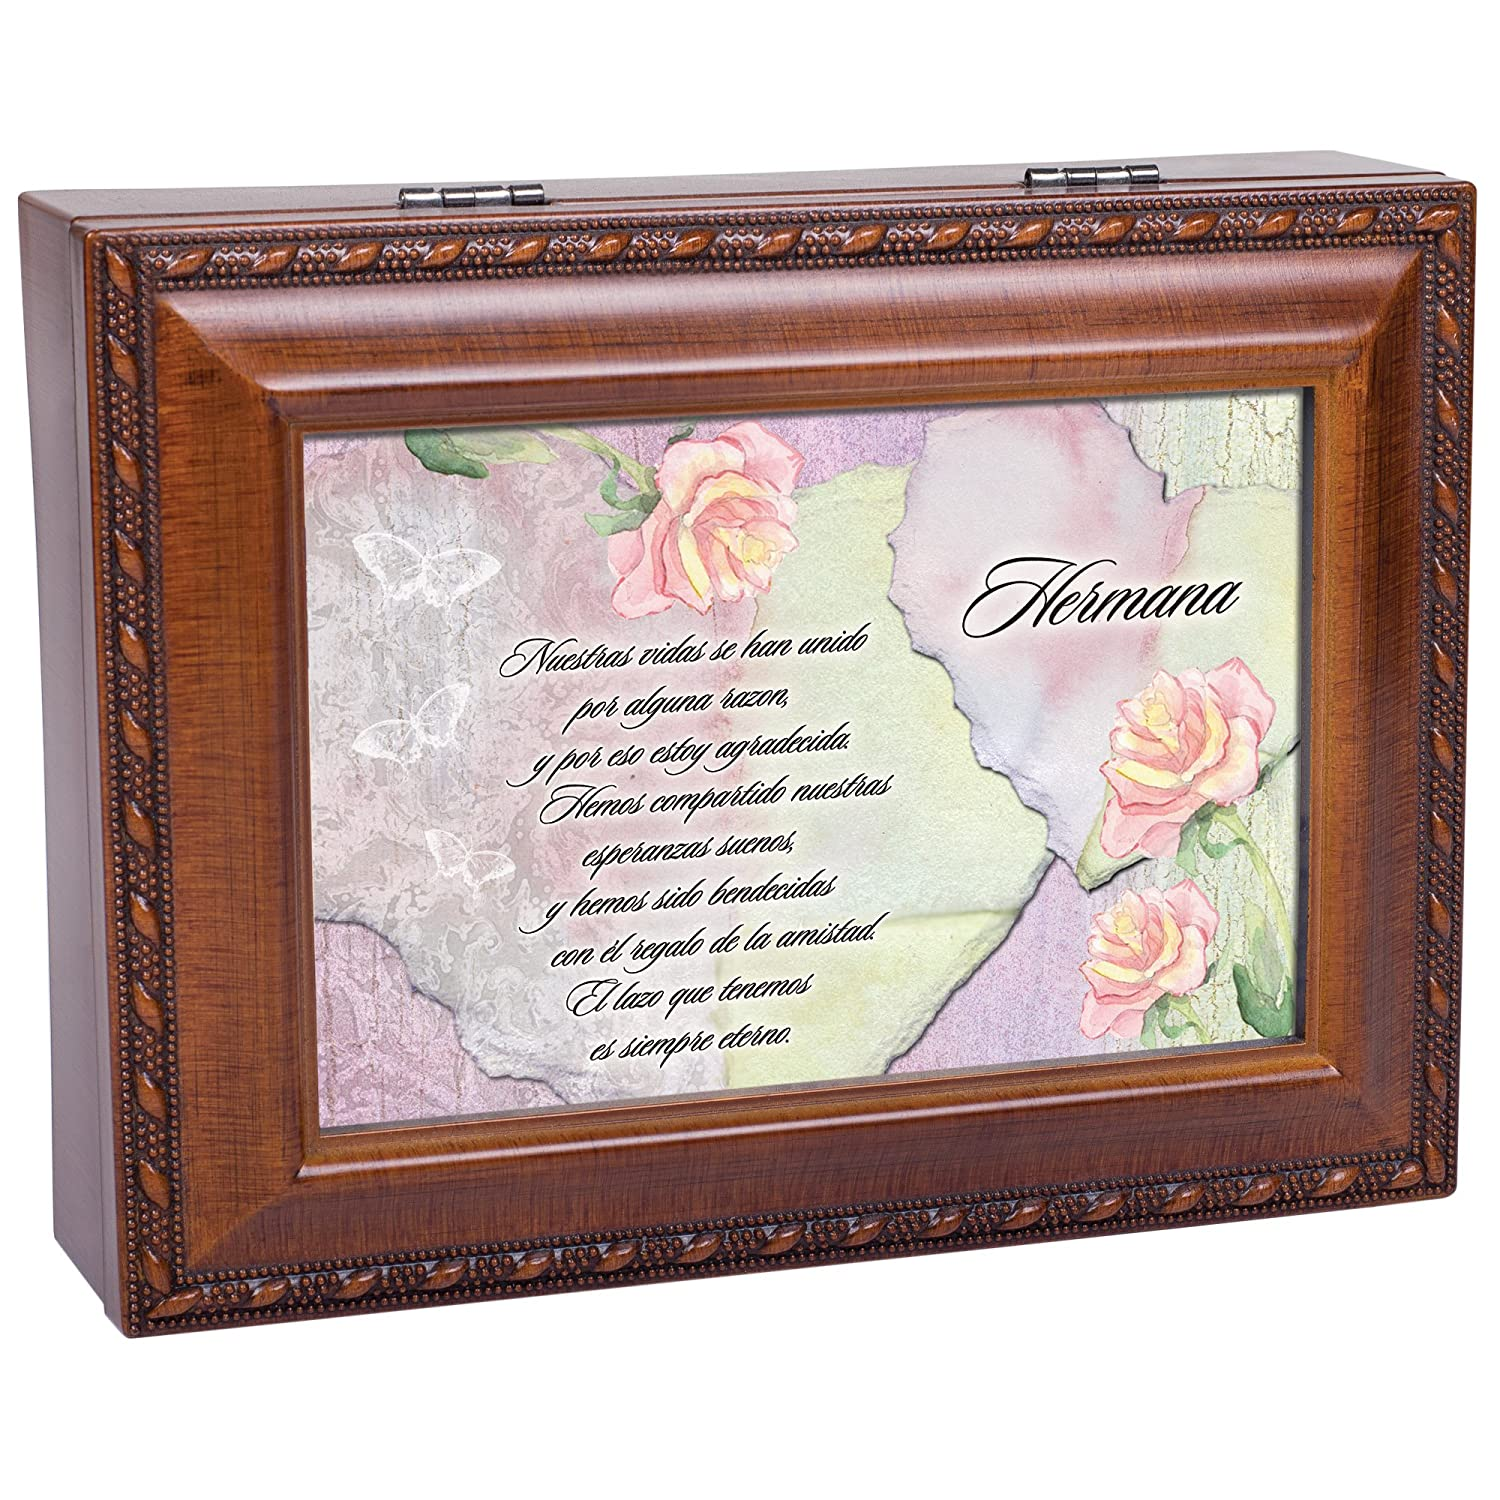 Amazon.com: Cottage Garden Hermanas Wood Finish Jewelry Music Box Thats What Friends are for: Home & Kitchen